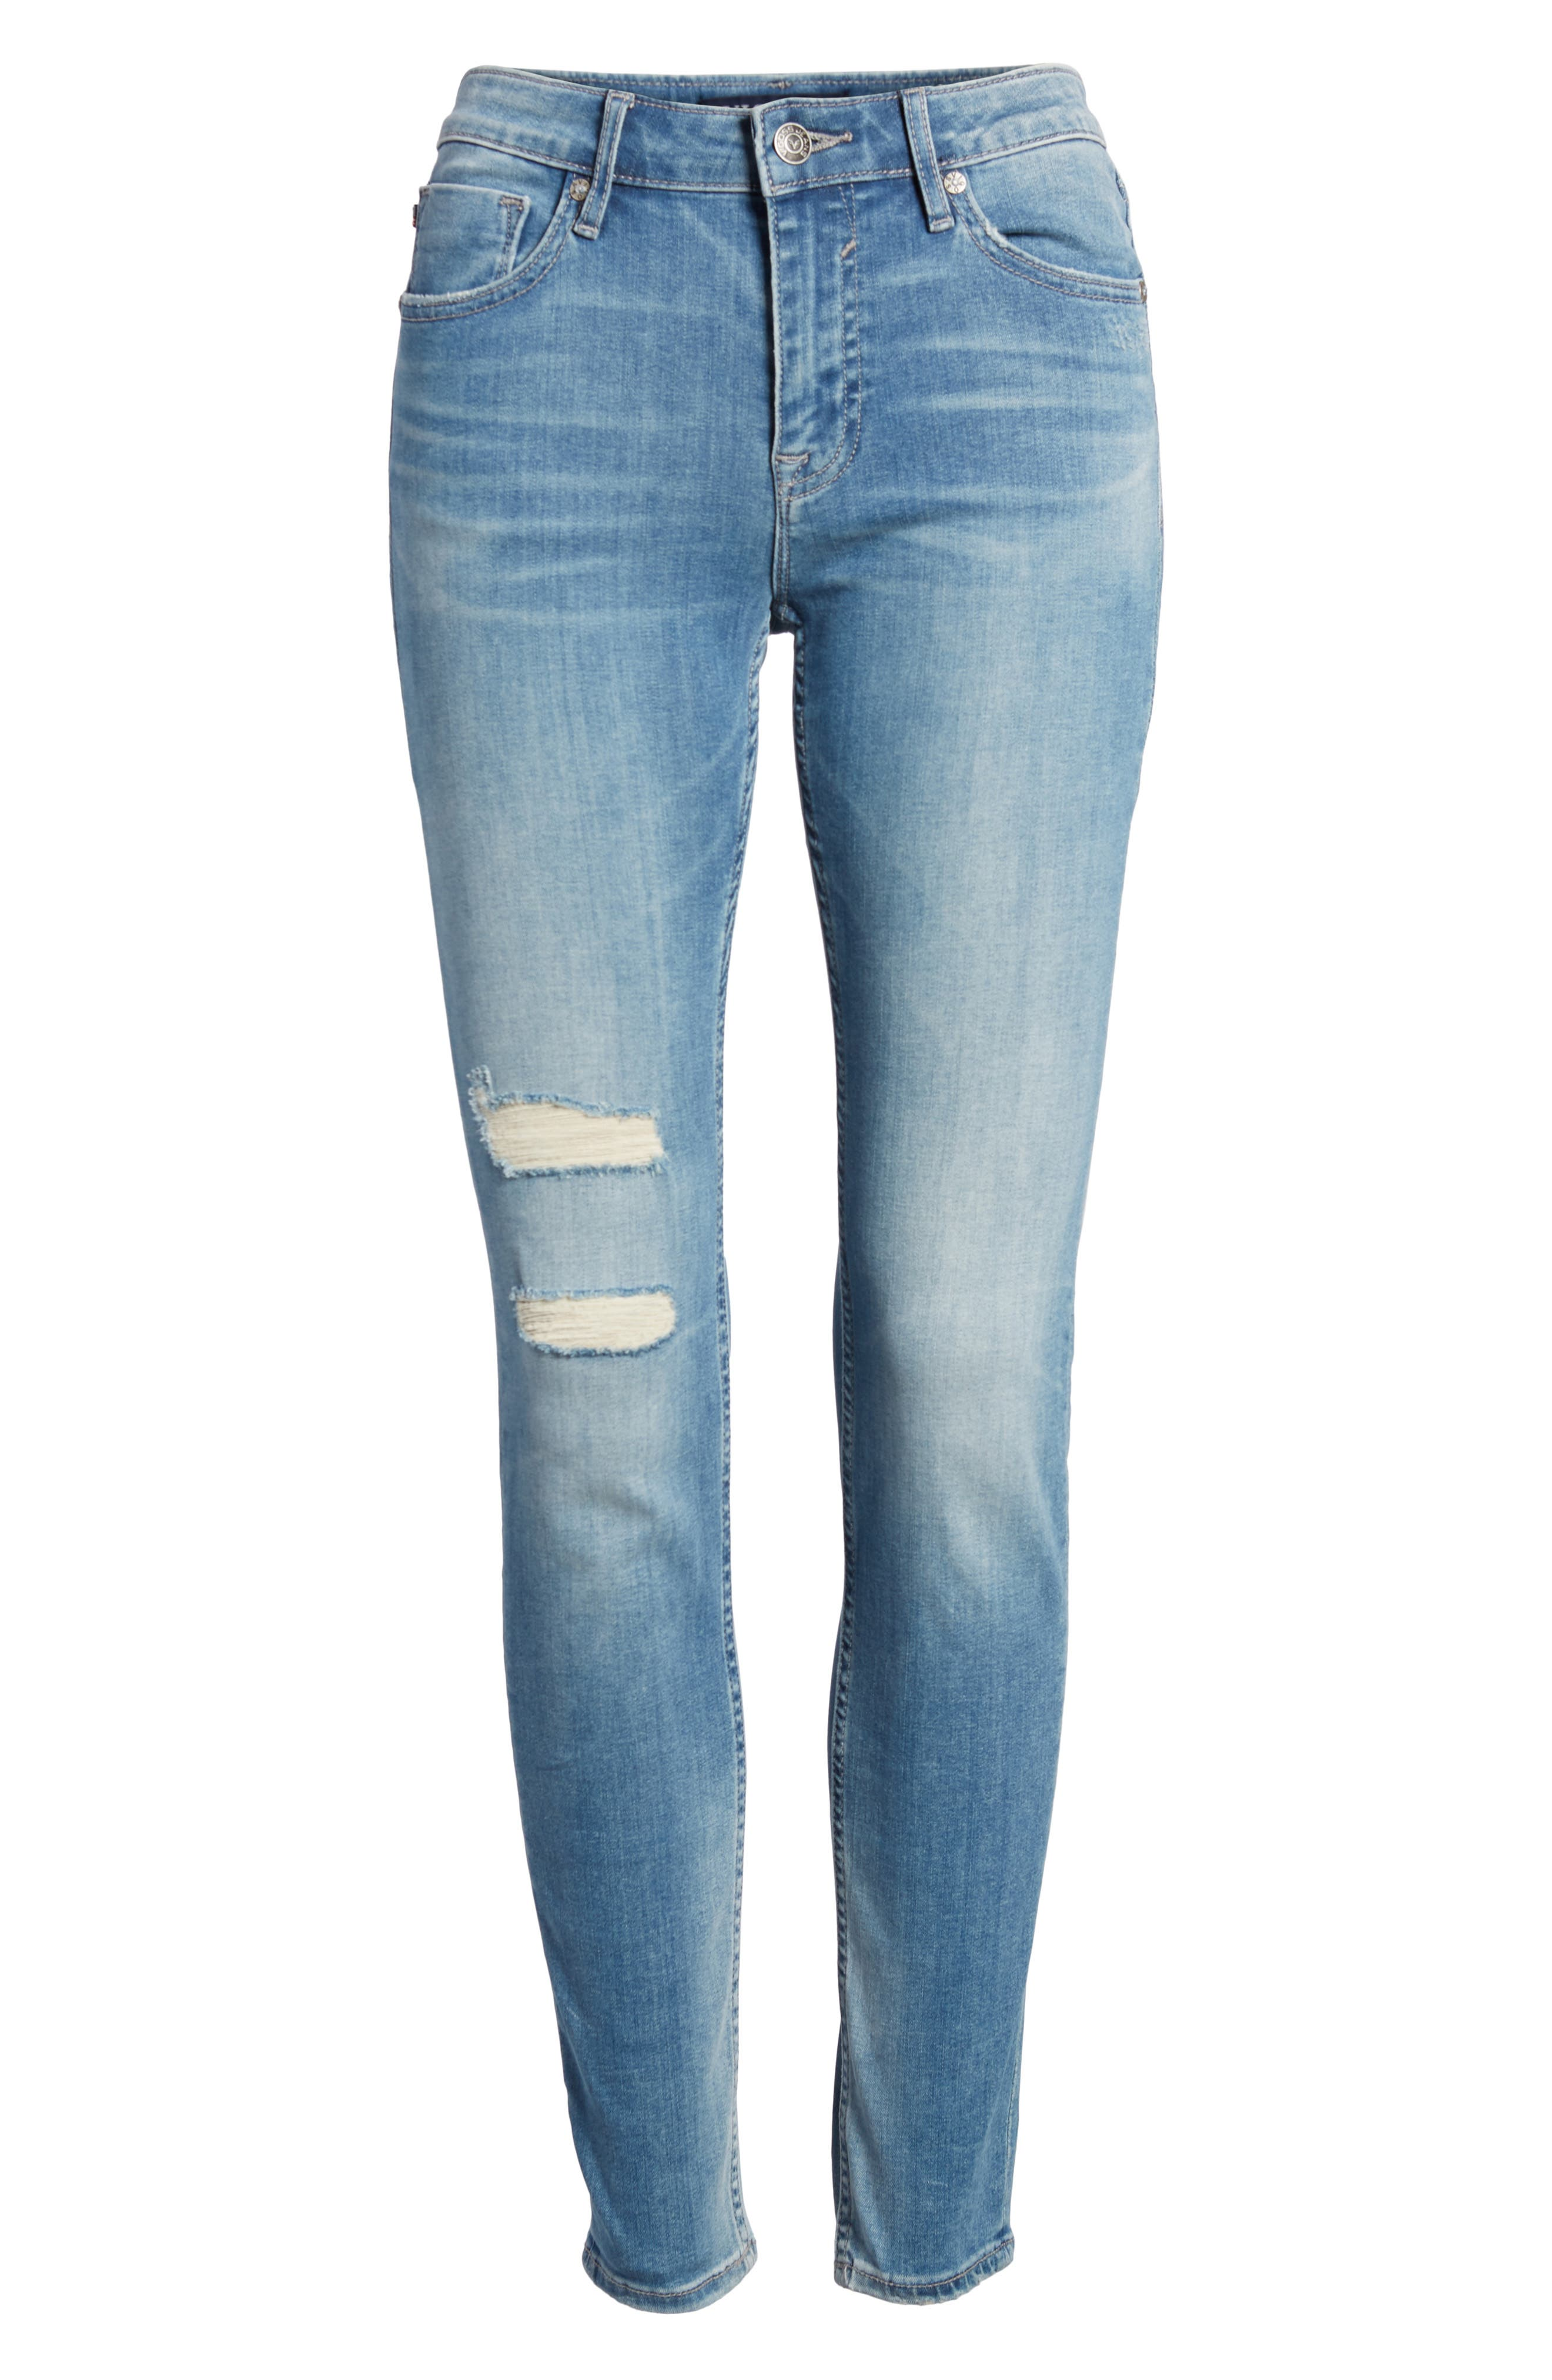 Marley Ripped Skinny Jeans,                             Alternate thumbnail 6, color,